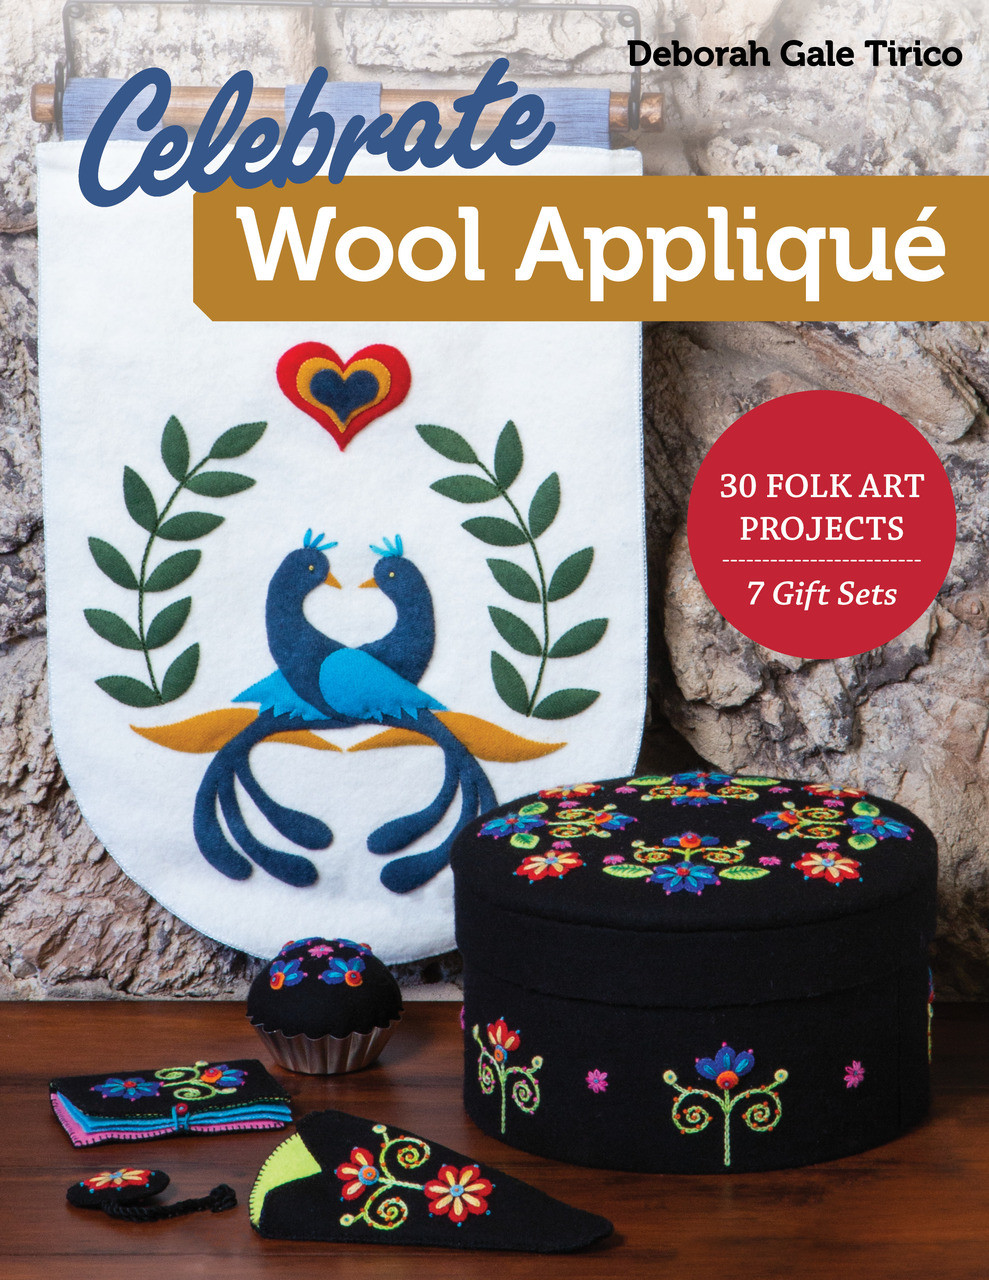 Wool appliqué enthusiasts, bring your skills to the next level with thirty timeless and bold folk-art designs from Deborah Gale Tirico. Covered boxes, book covers, coasters, pillows, and more—make a set of coordinating wool-felt appliqué projects, or choose your favorite gifts and home decor from among the seven design suites. Learn how to get a sculpted look with needle-slanting, trapunto, and layering. Place each wool appliqué element perfectly with full-size patterns, plus placement and embroidery guides. With no turned edges, you'll be able to relax into each leisurely stitch.